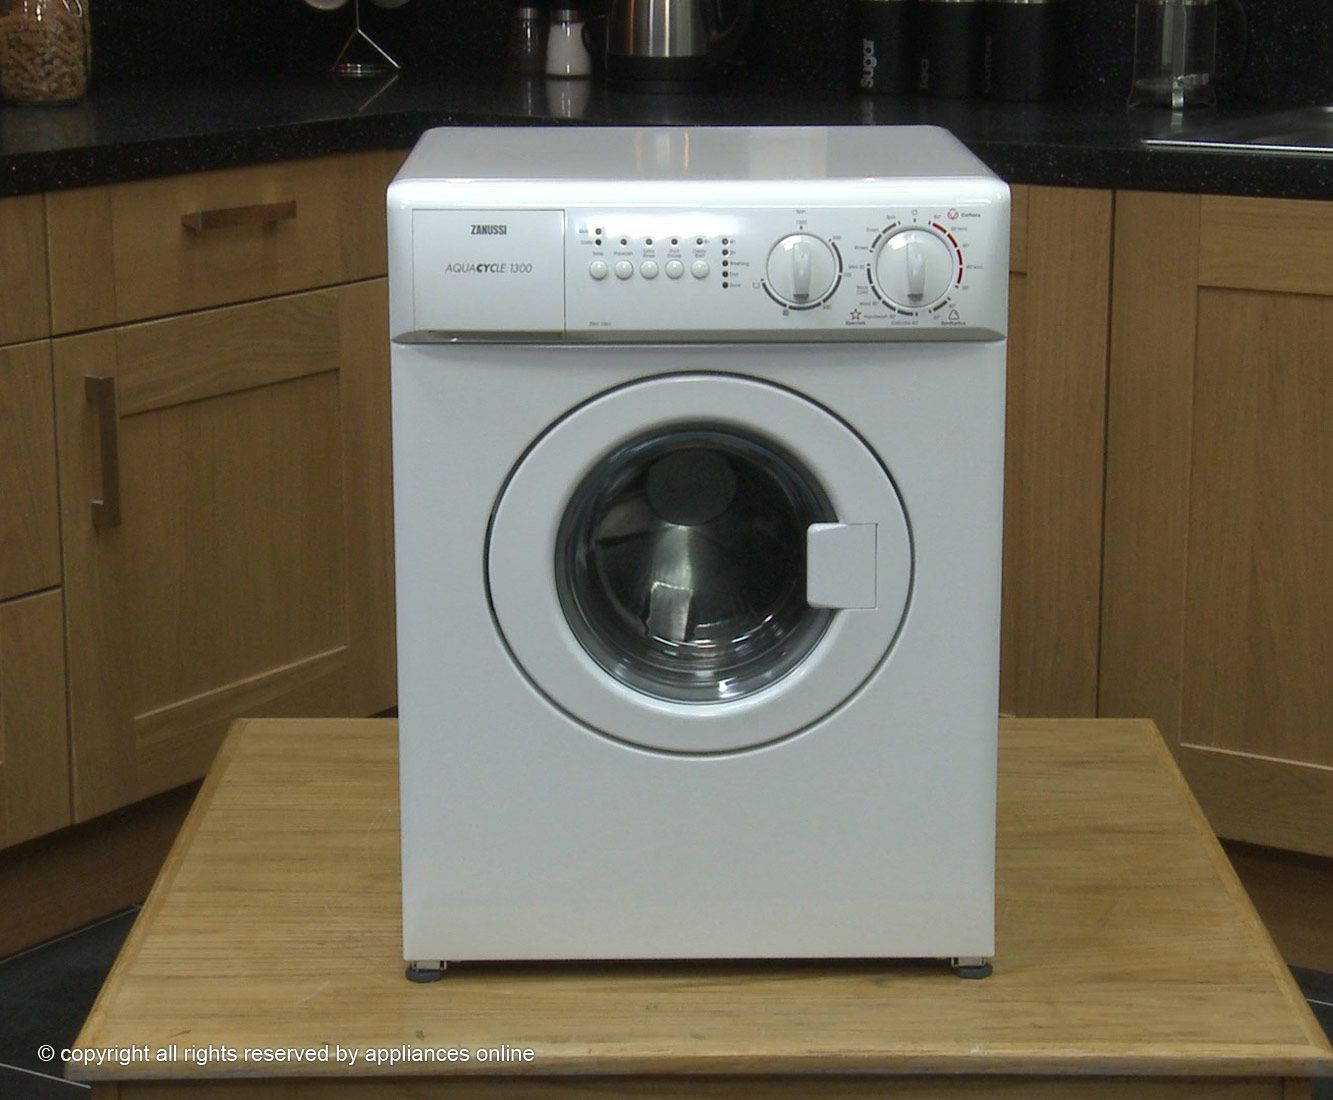 Check out http://www.bestwashingmachineguide.co.uk/small-washing ...